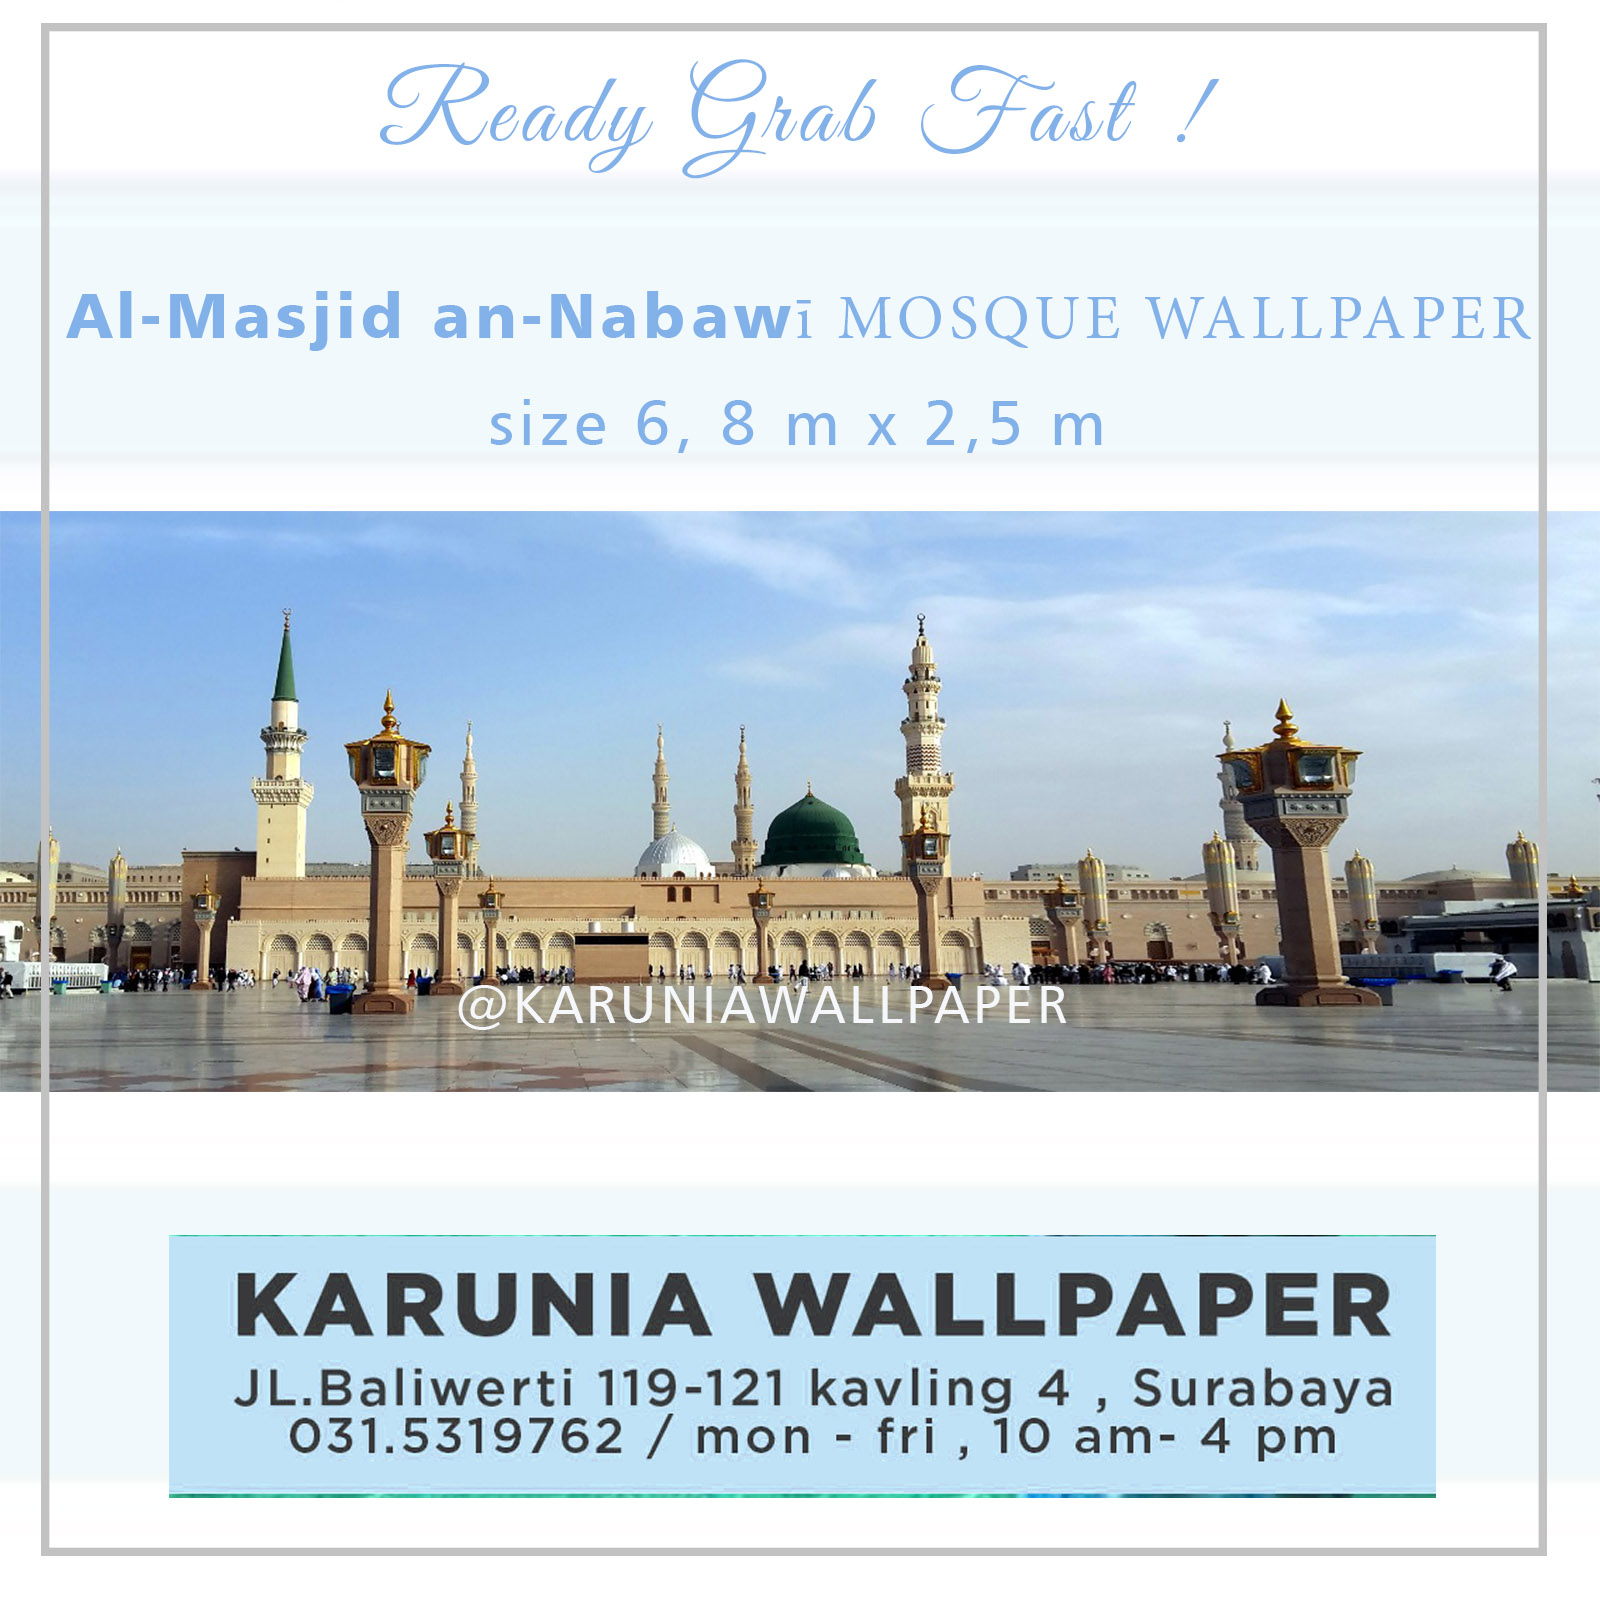 READY WALLPAPER MASJID PROMO!